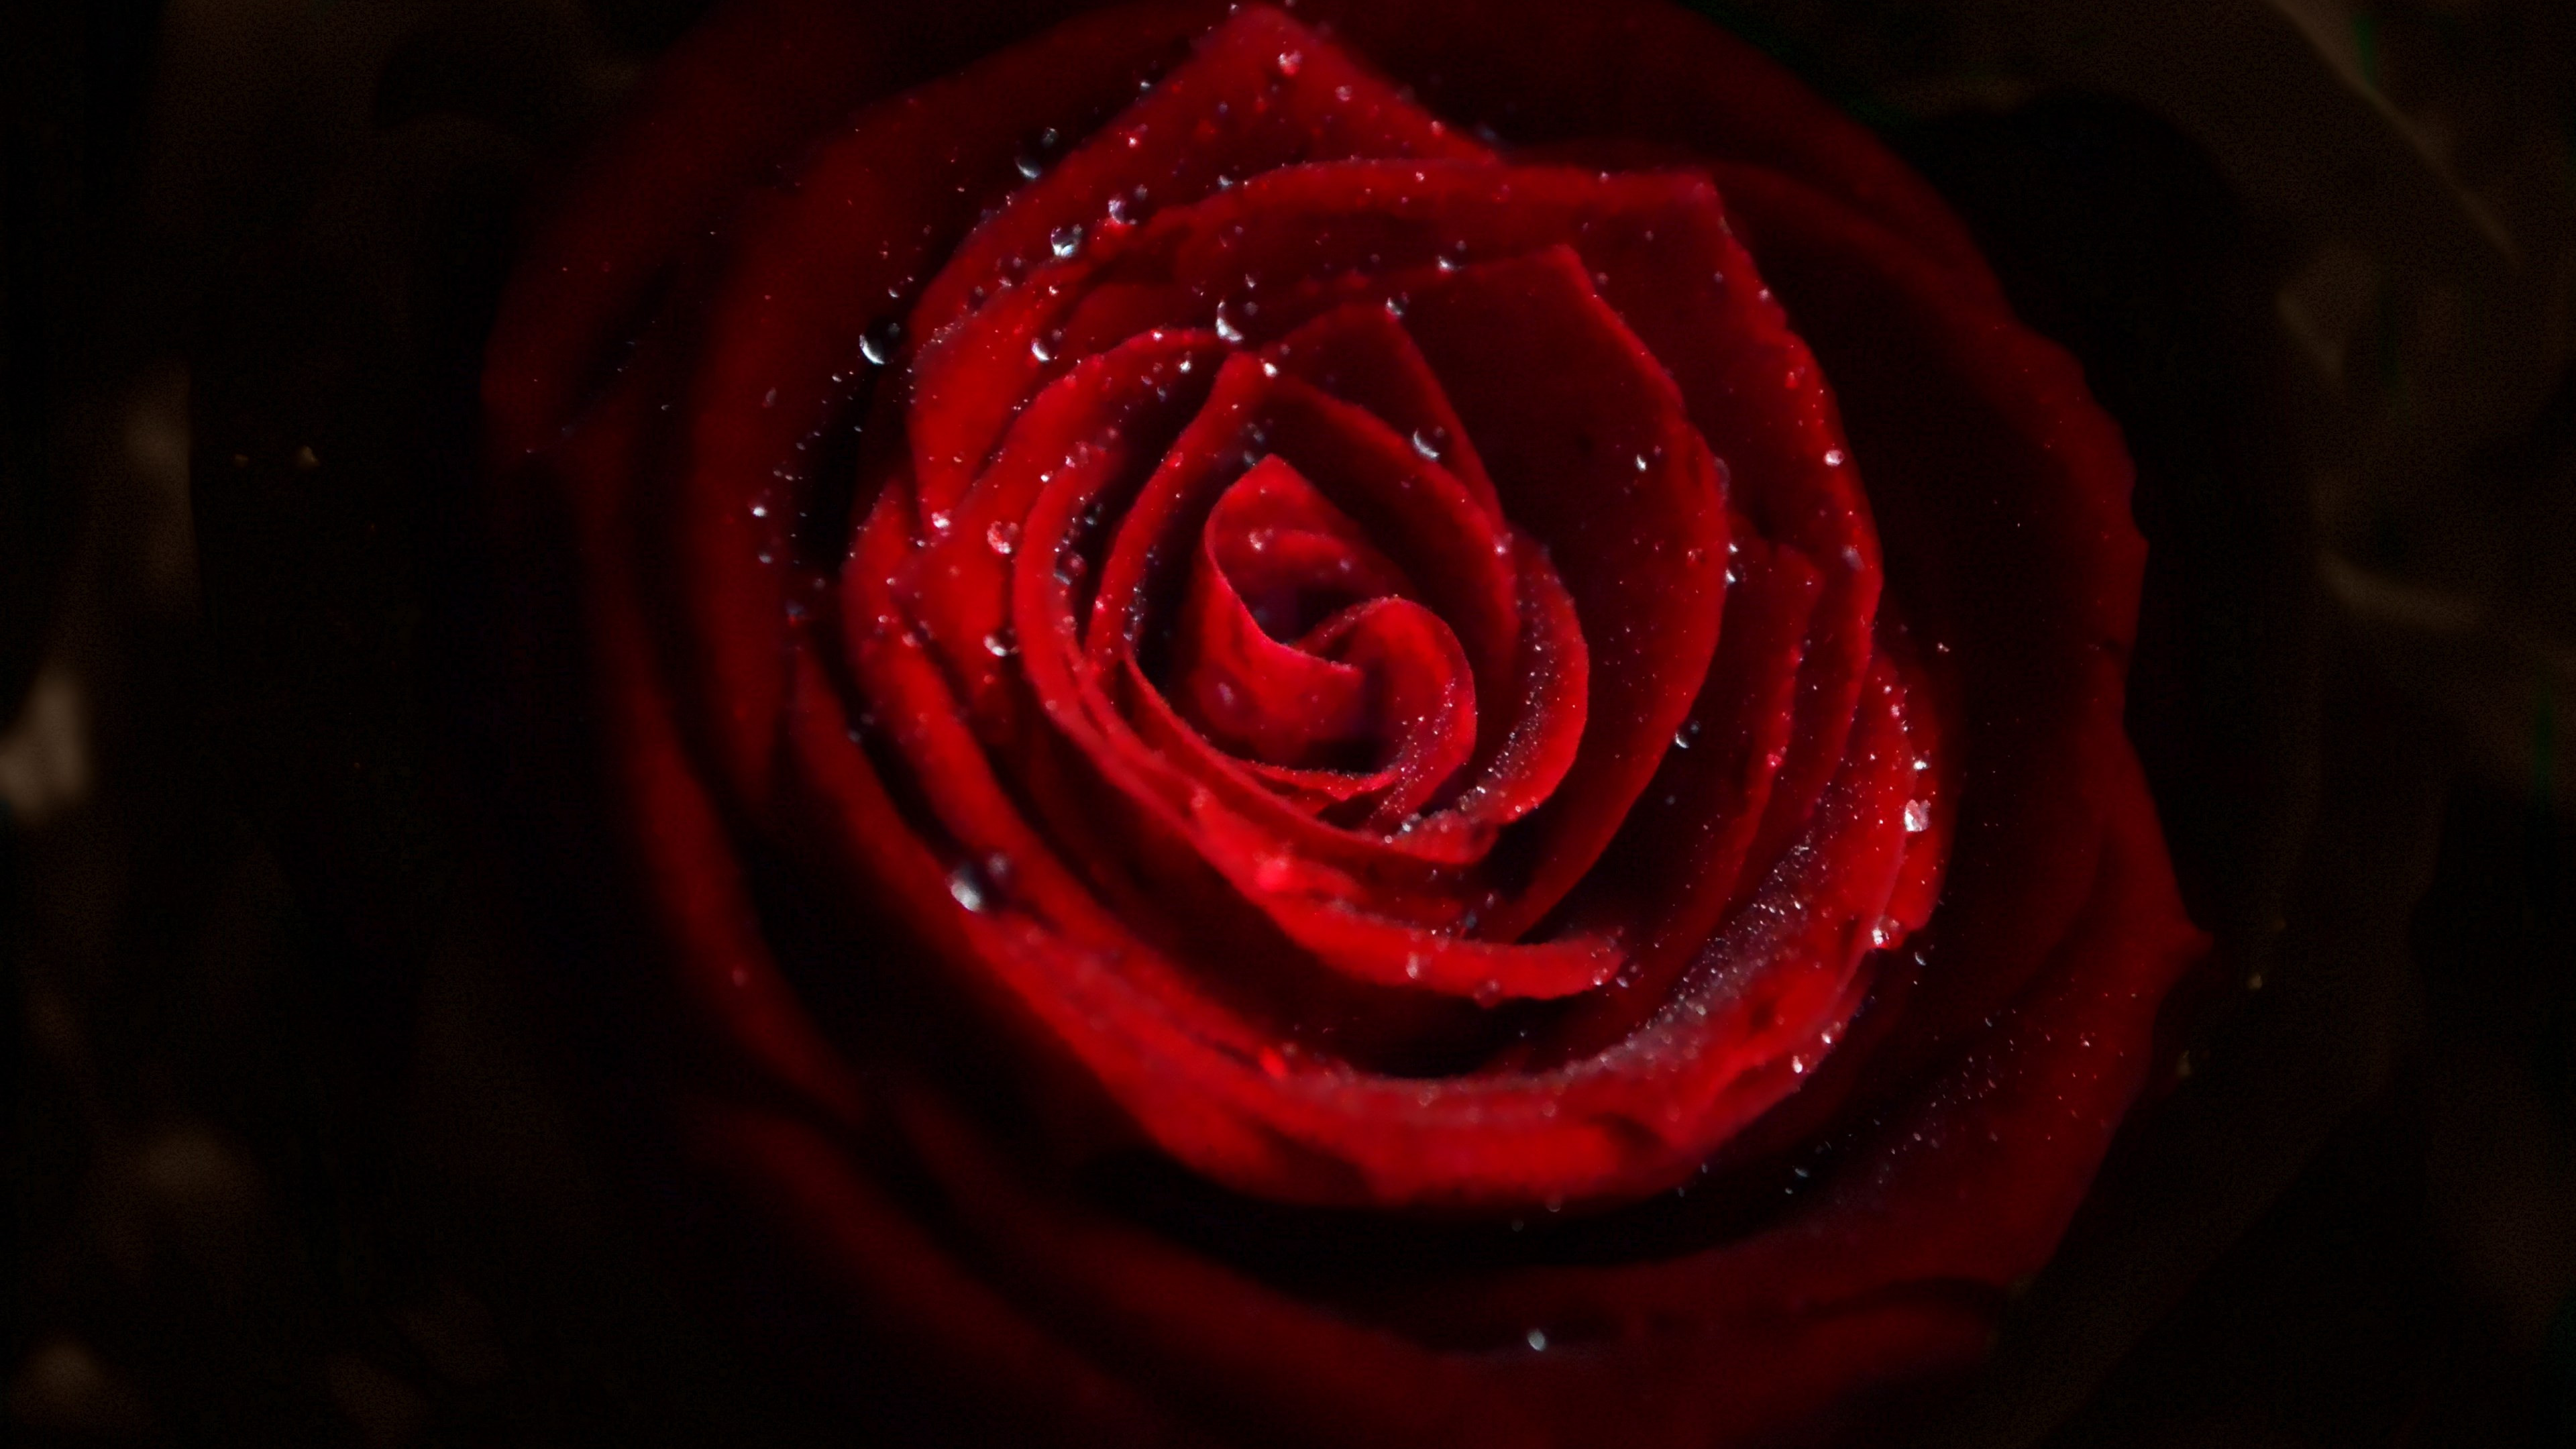 Water drops on red rose wallpaper 3840x2160